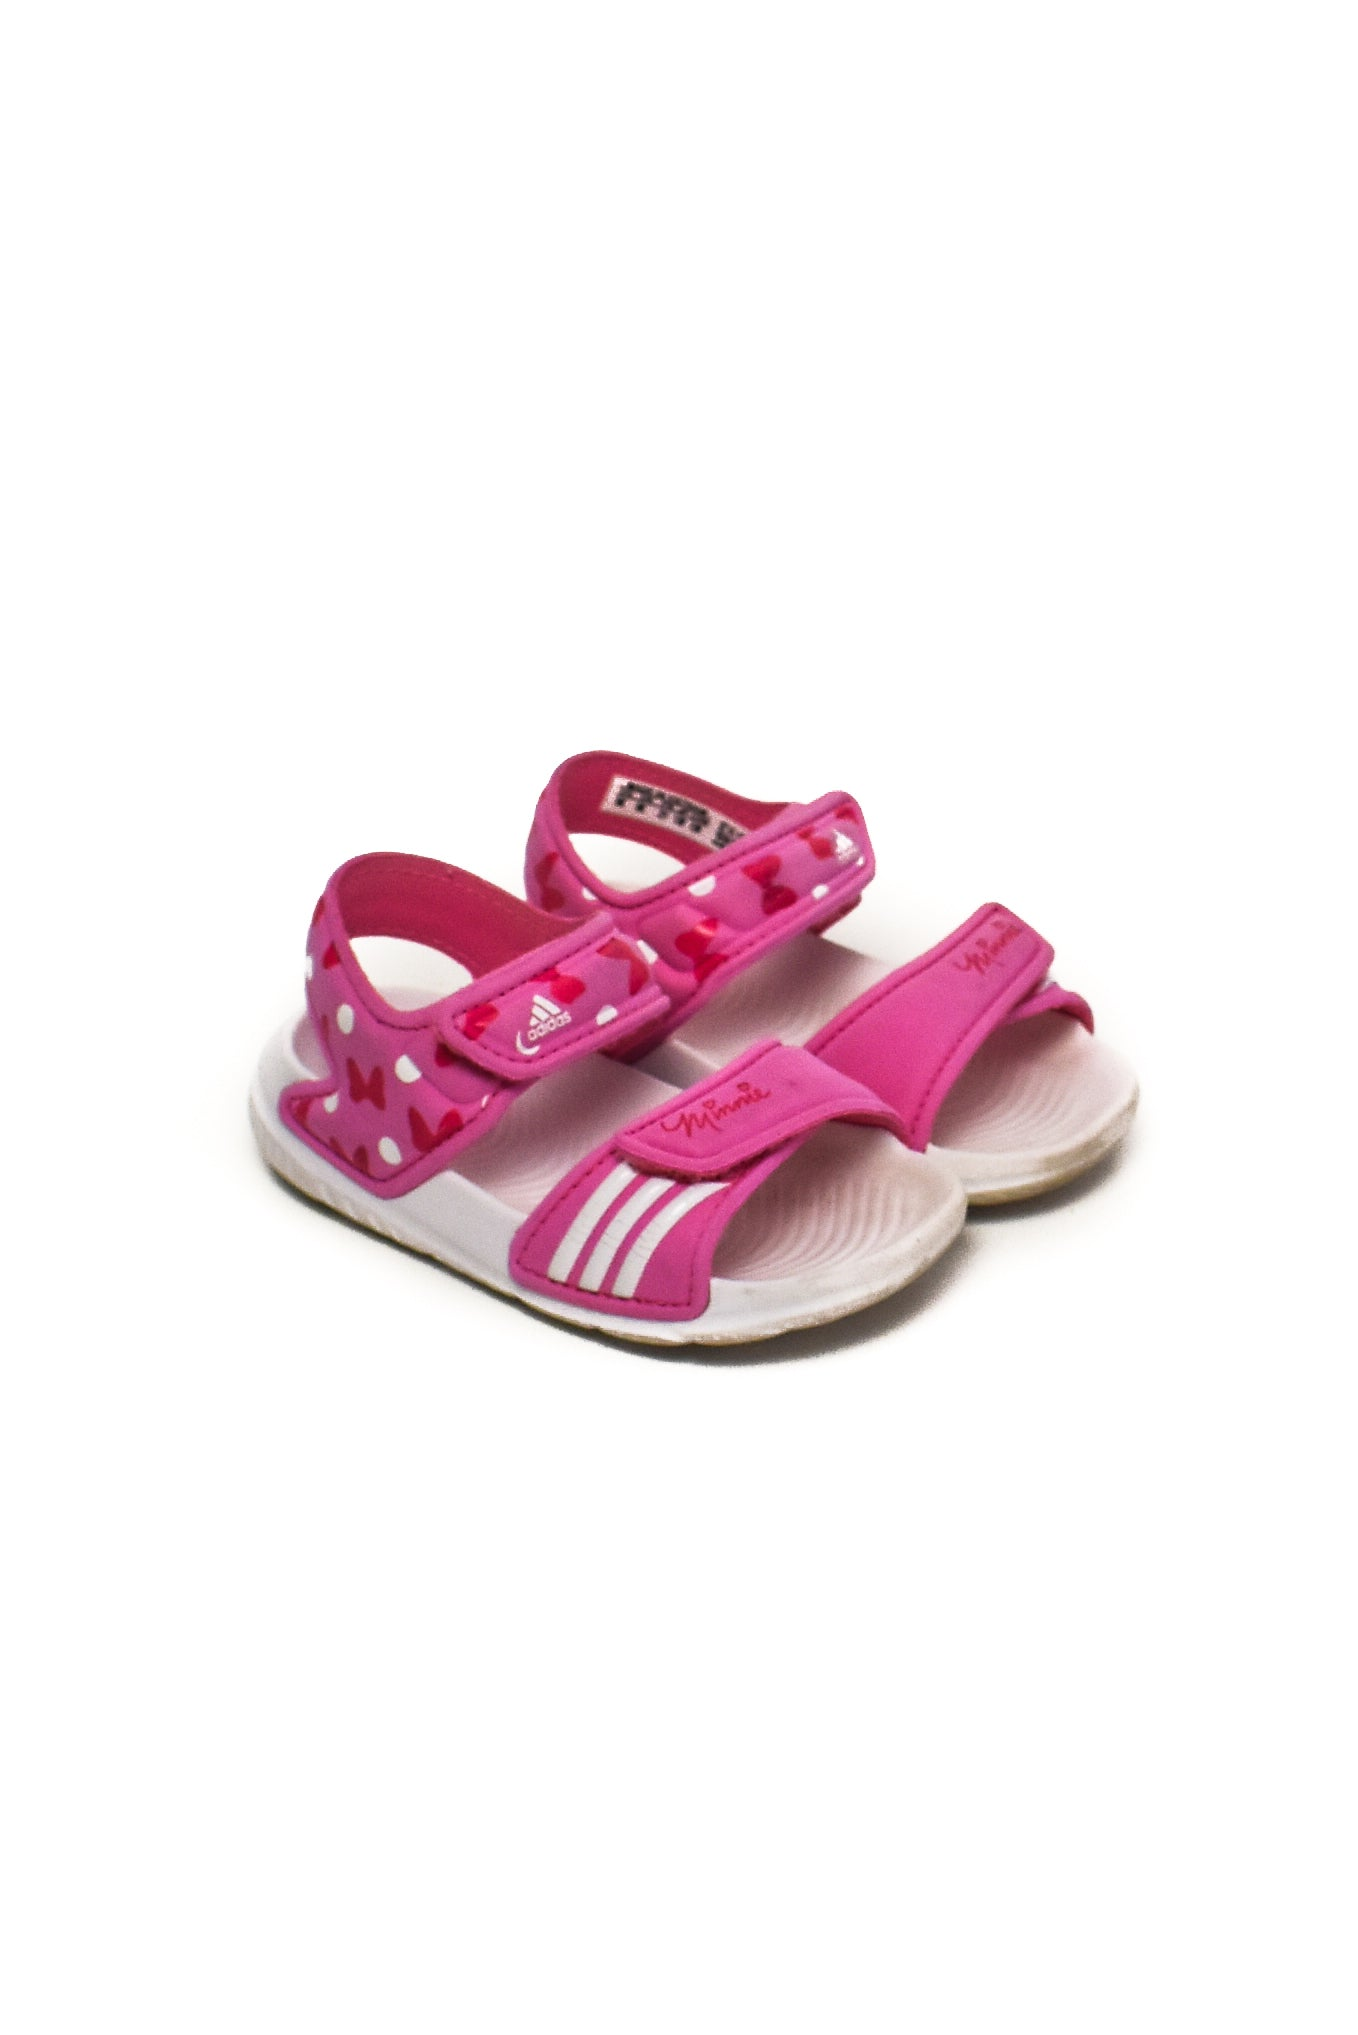 10006714 Adidas Kids~ Sandals 12-18M (EU 21) at Retykle